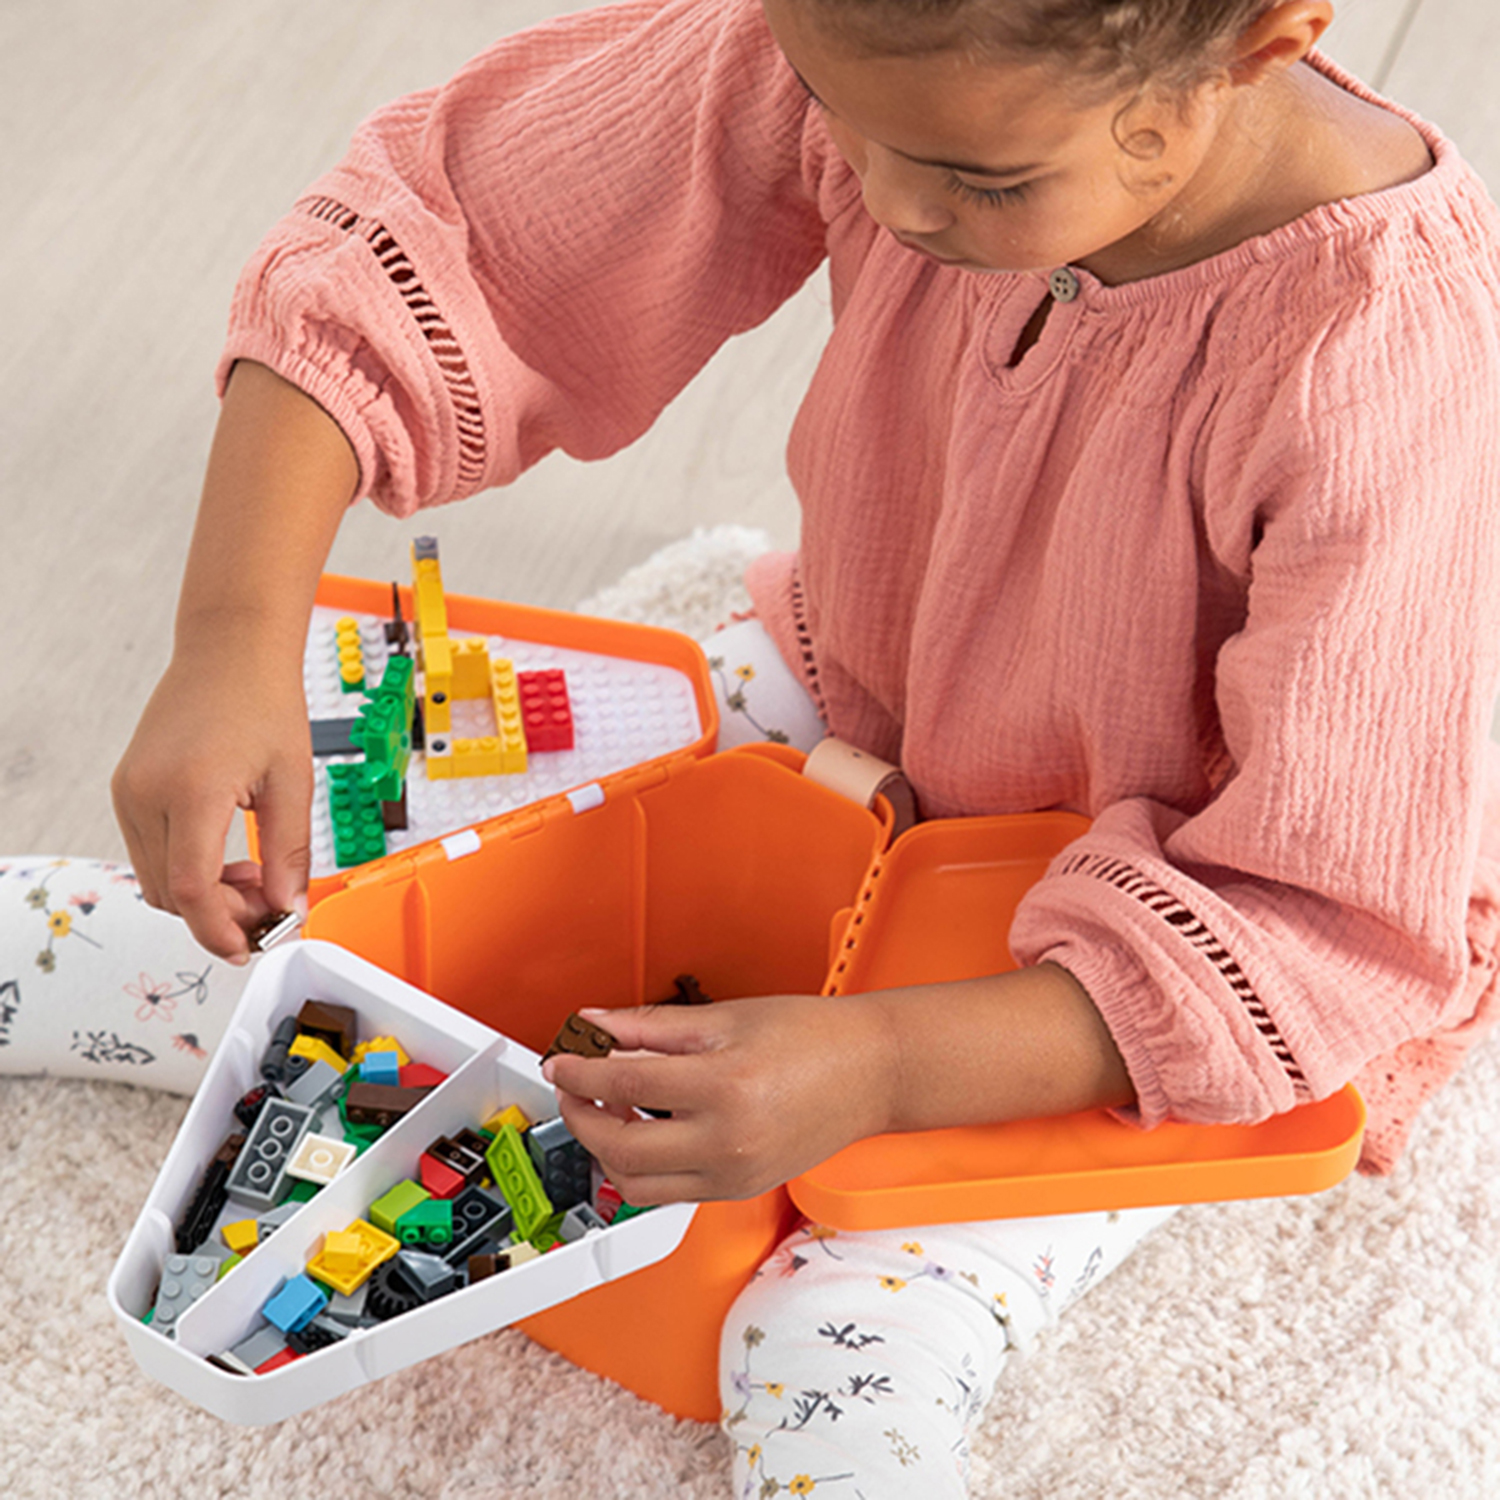 Best for Lego Storage on the Go: Teebee Play and Store Toy Box